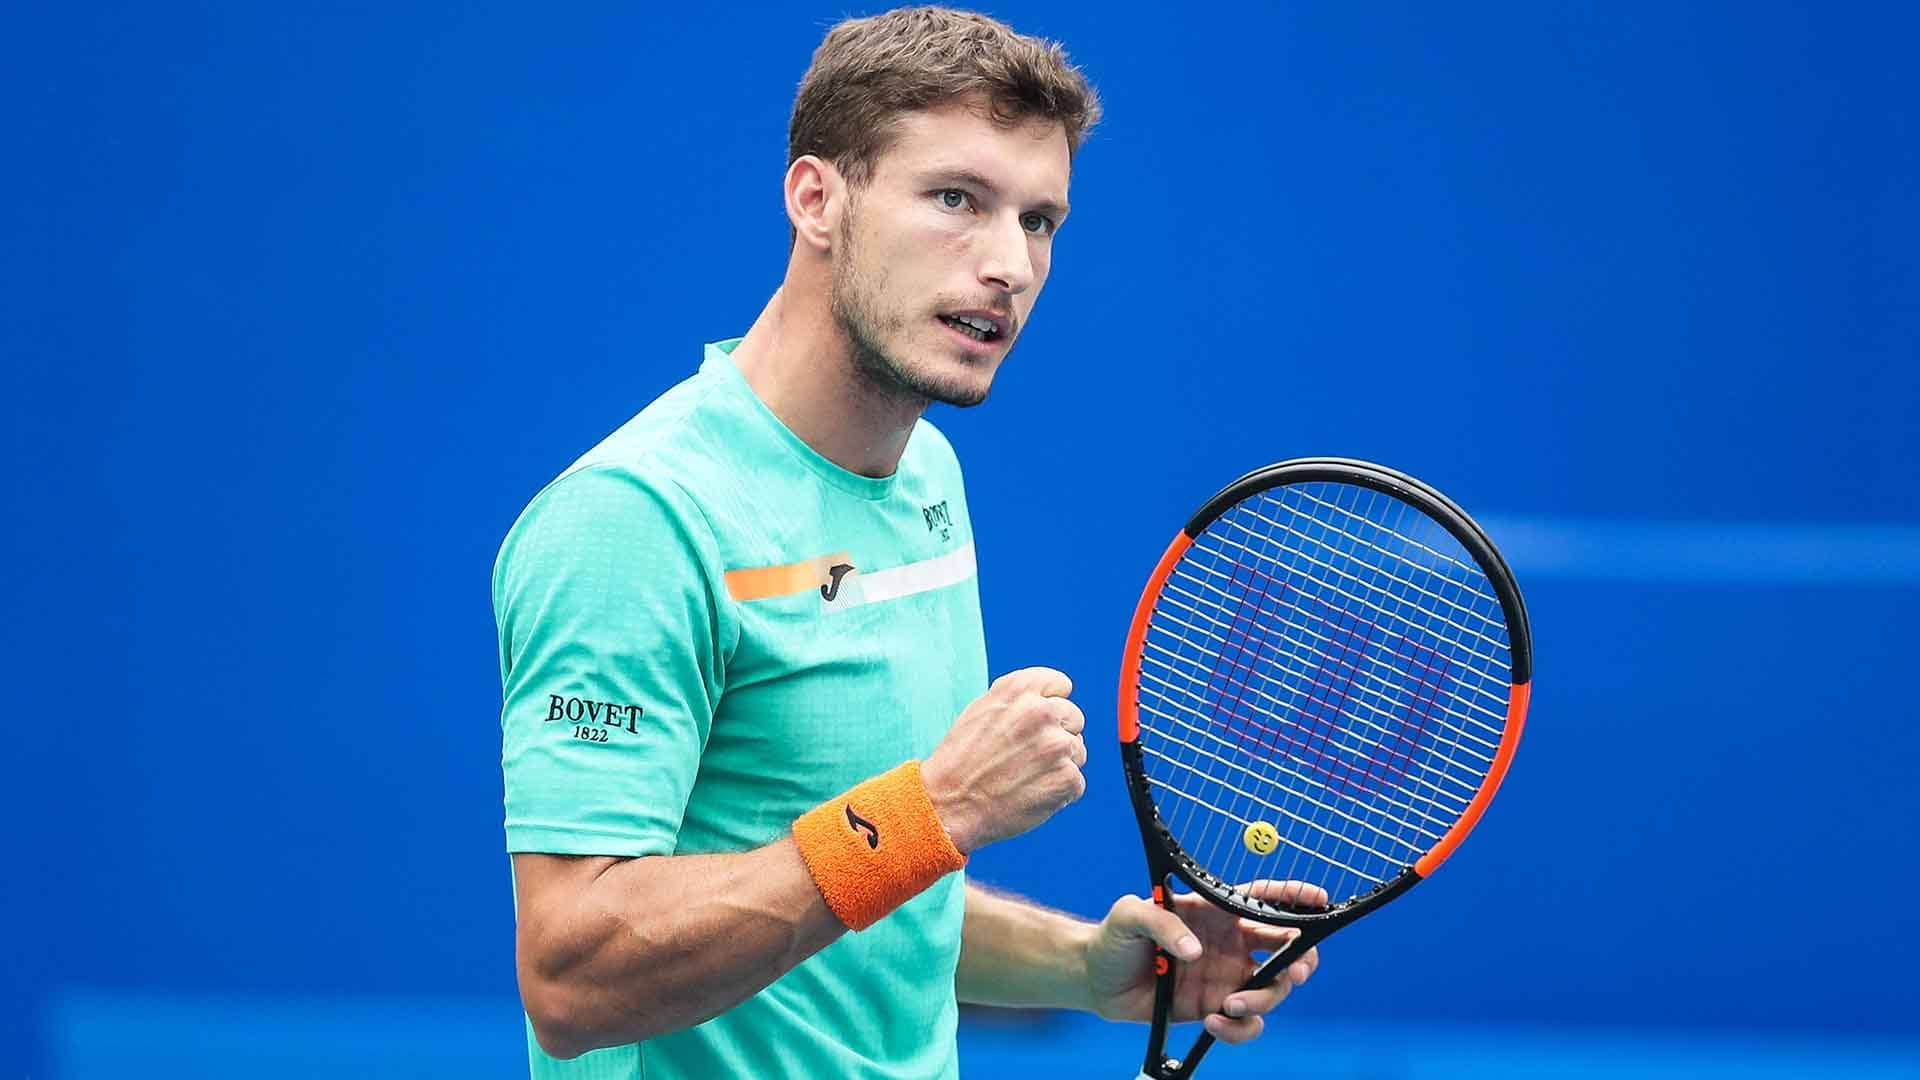 Pablo Carreno Busta improves to 24-17 at tour-level this year.